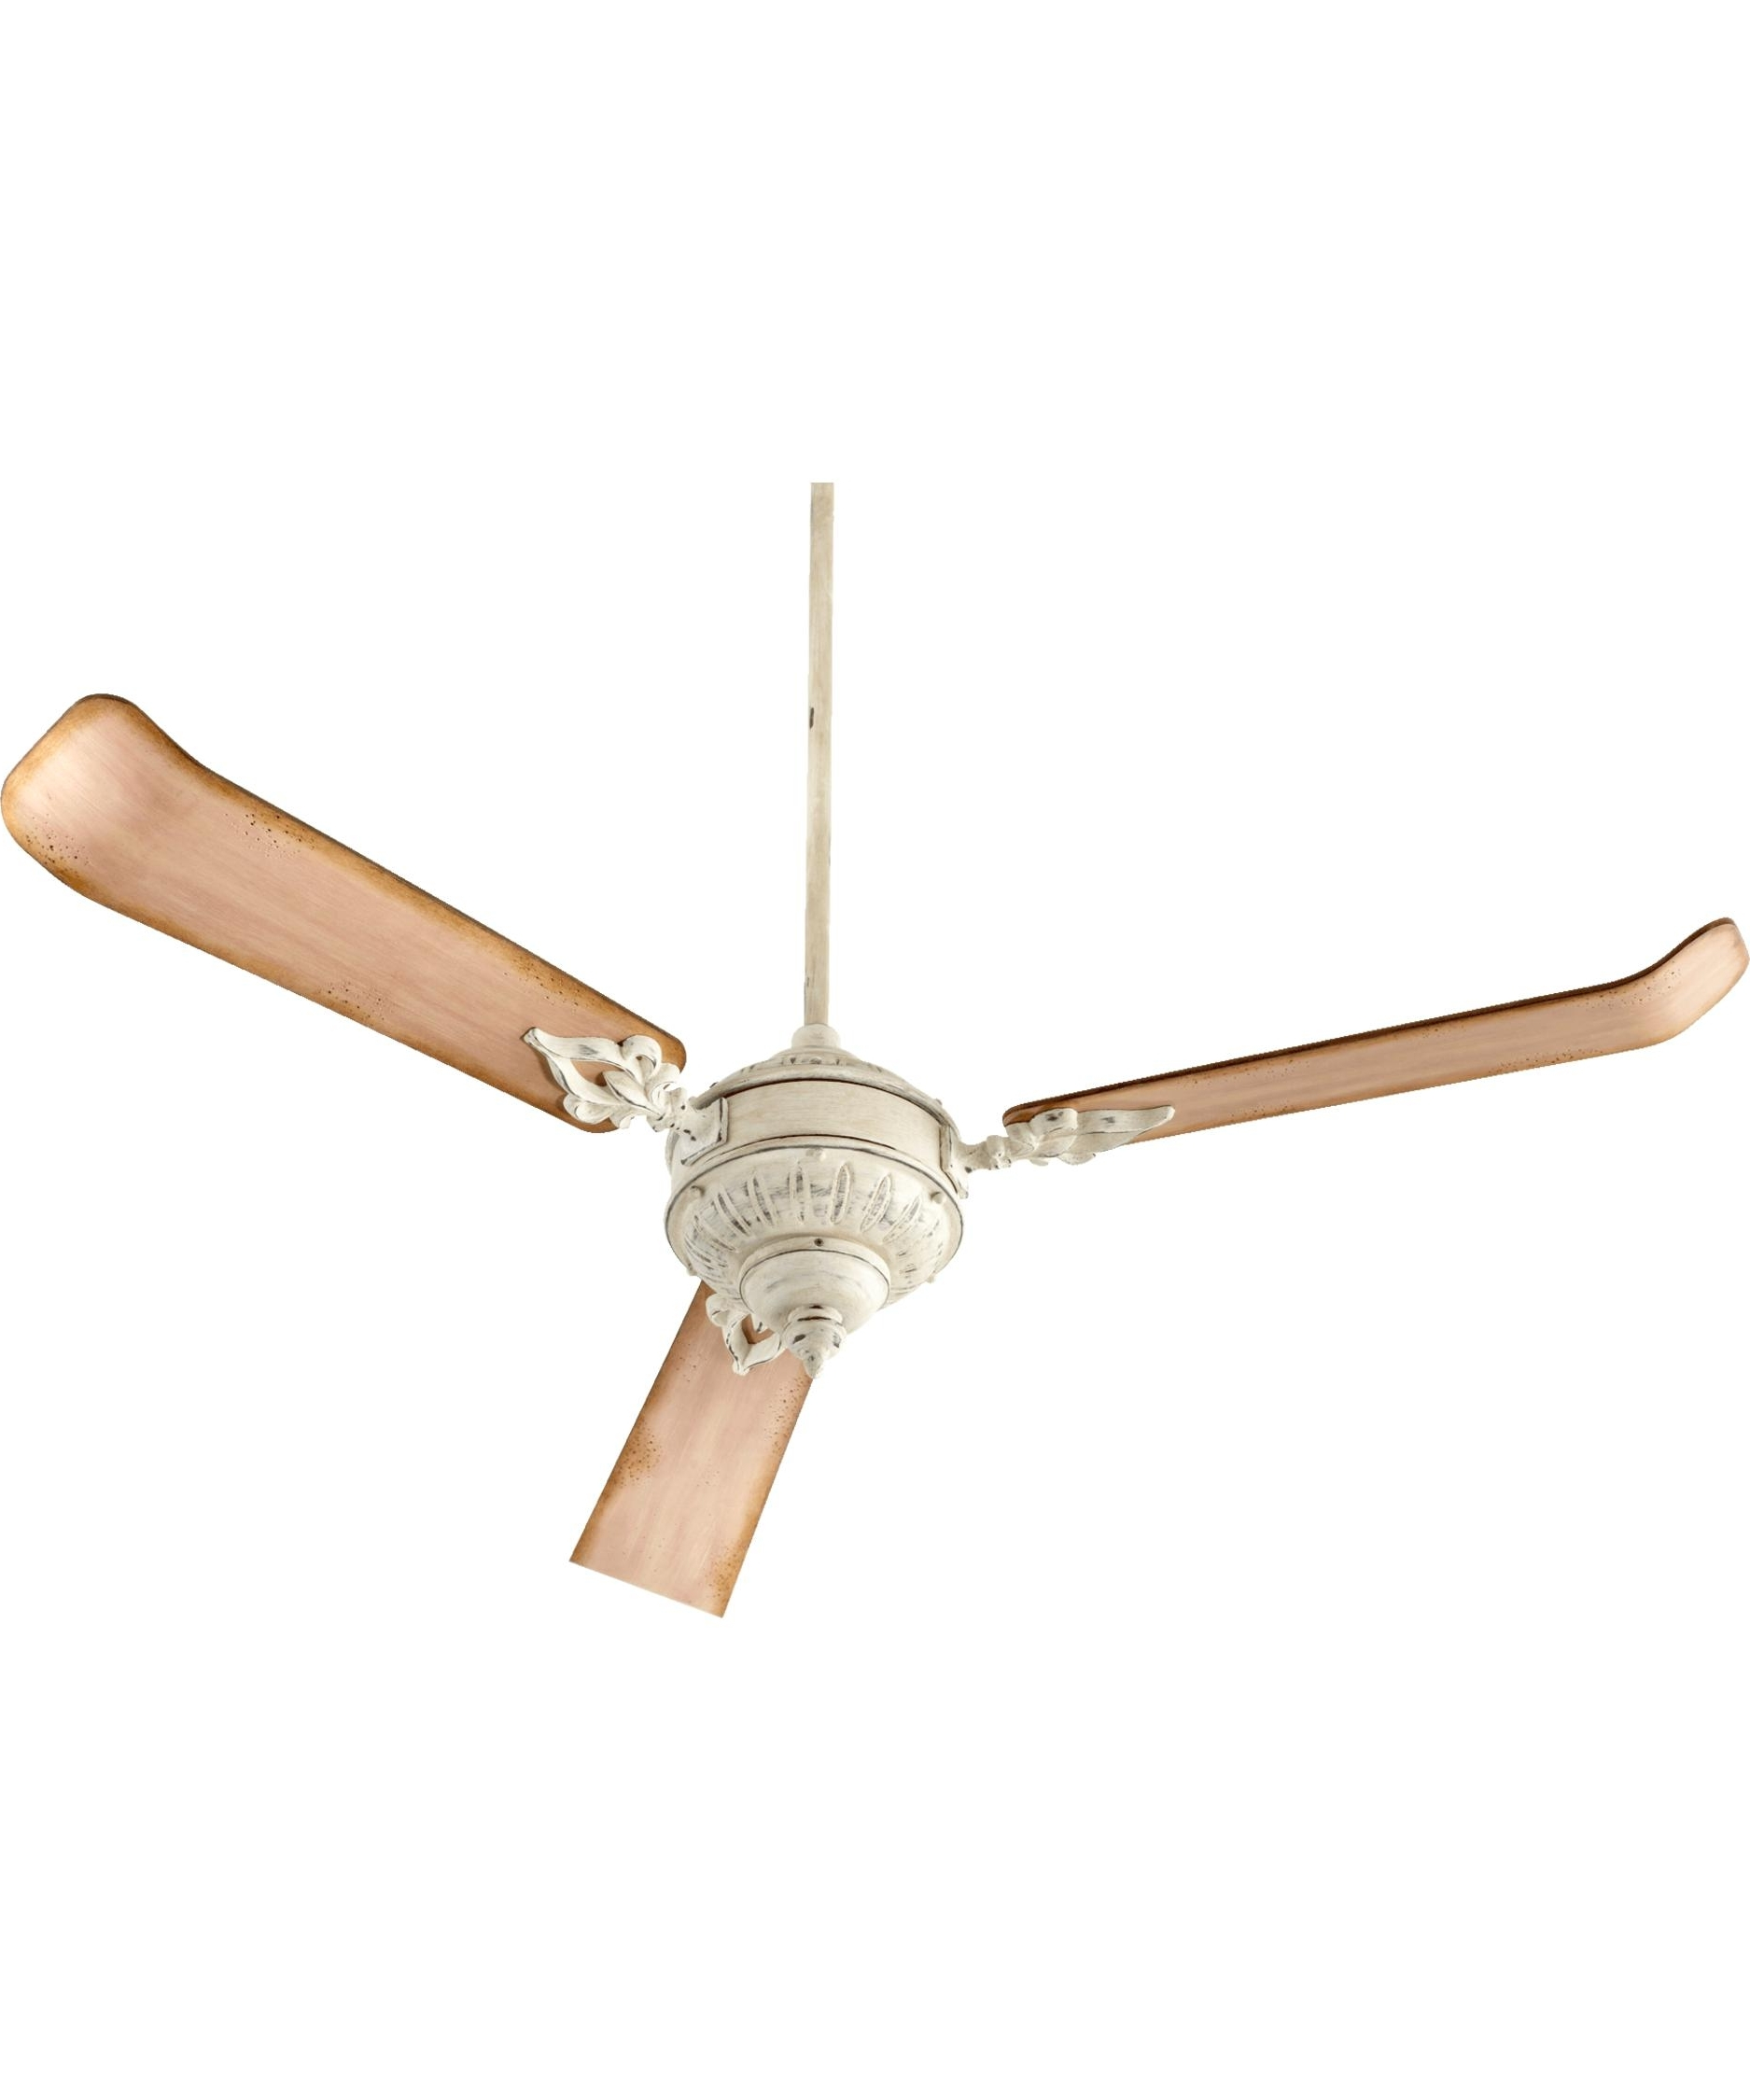 Most Popular Quorum Outdoor Ceiling Fans Throughout Quorum International 27603 Brewster 60 Inch 3 Blade Ceiling Fan (Gallery 2 of 20)